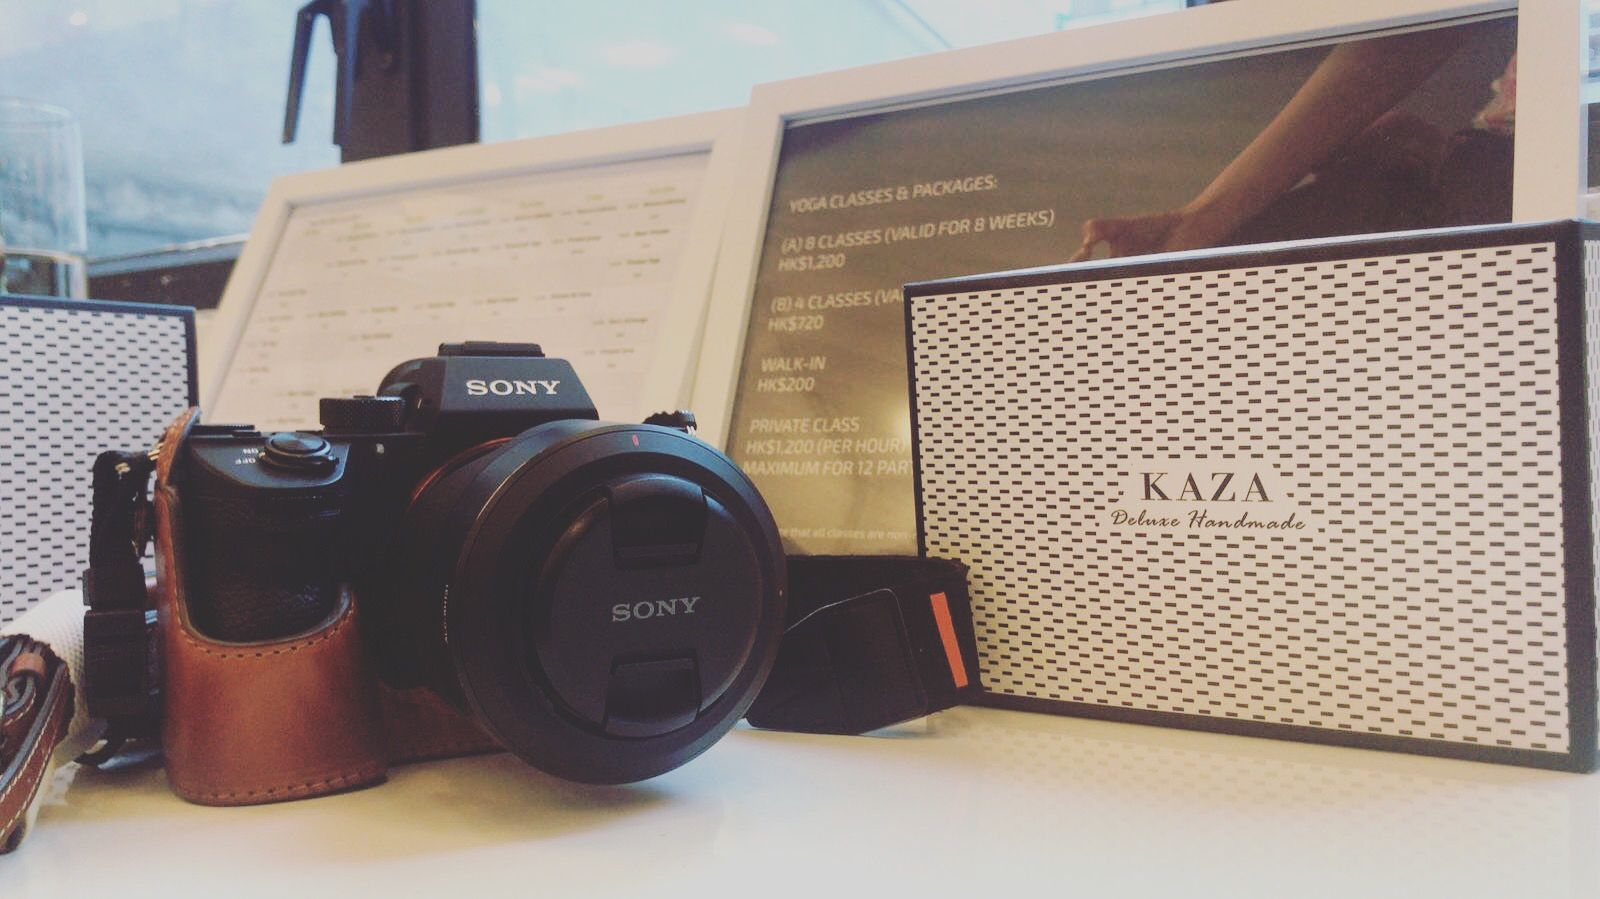 A7r3 / a73 cases by KAZA credit to Jack #革小物 #sonya7iii